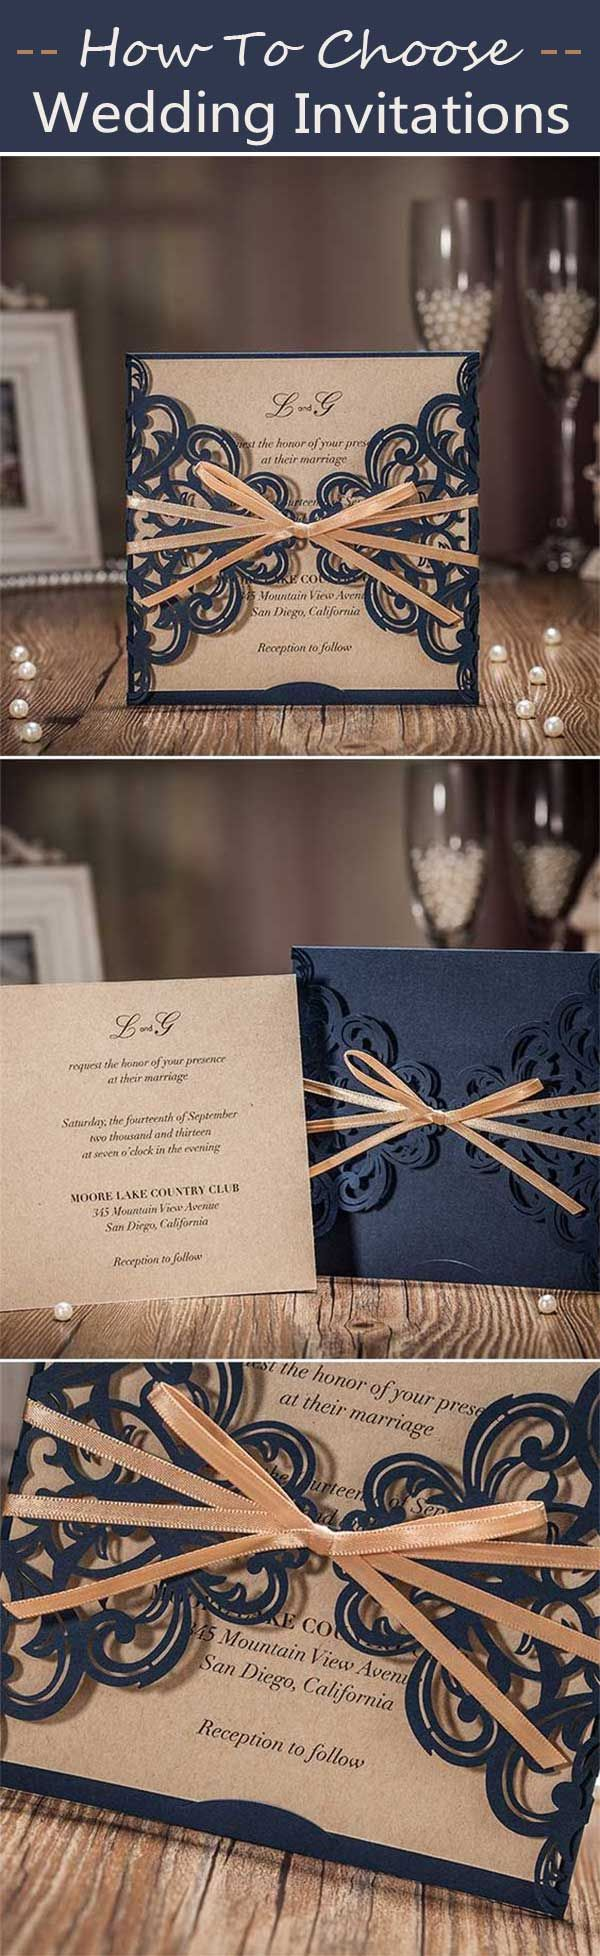 wedding invitation text format for friends%0A REAL WEDDING ACCESSORIES  HOW TO CHOOSE YOUR PERFECT WEDDING INVITATIONS   Wedding  Invites Paper